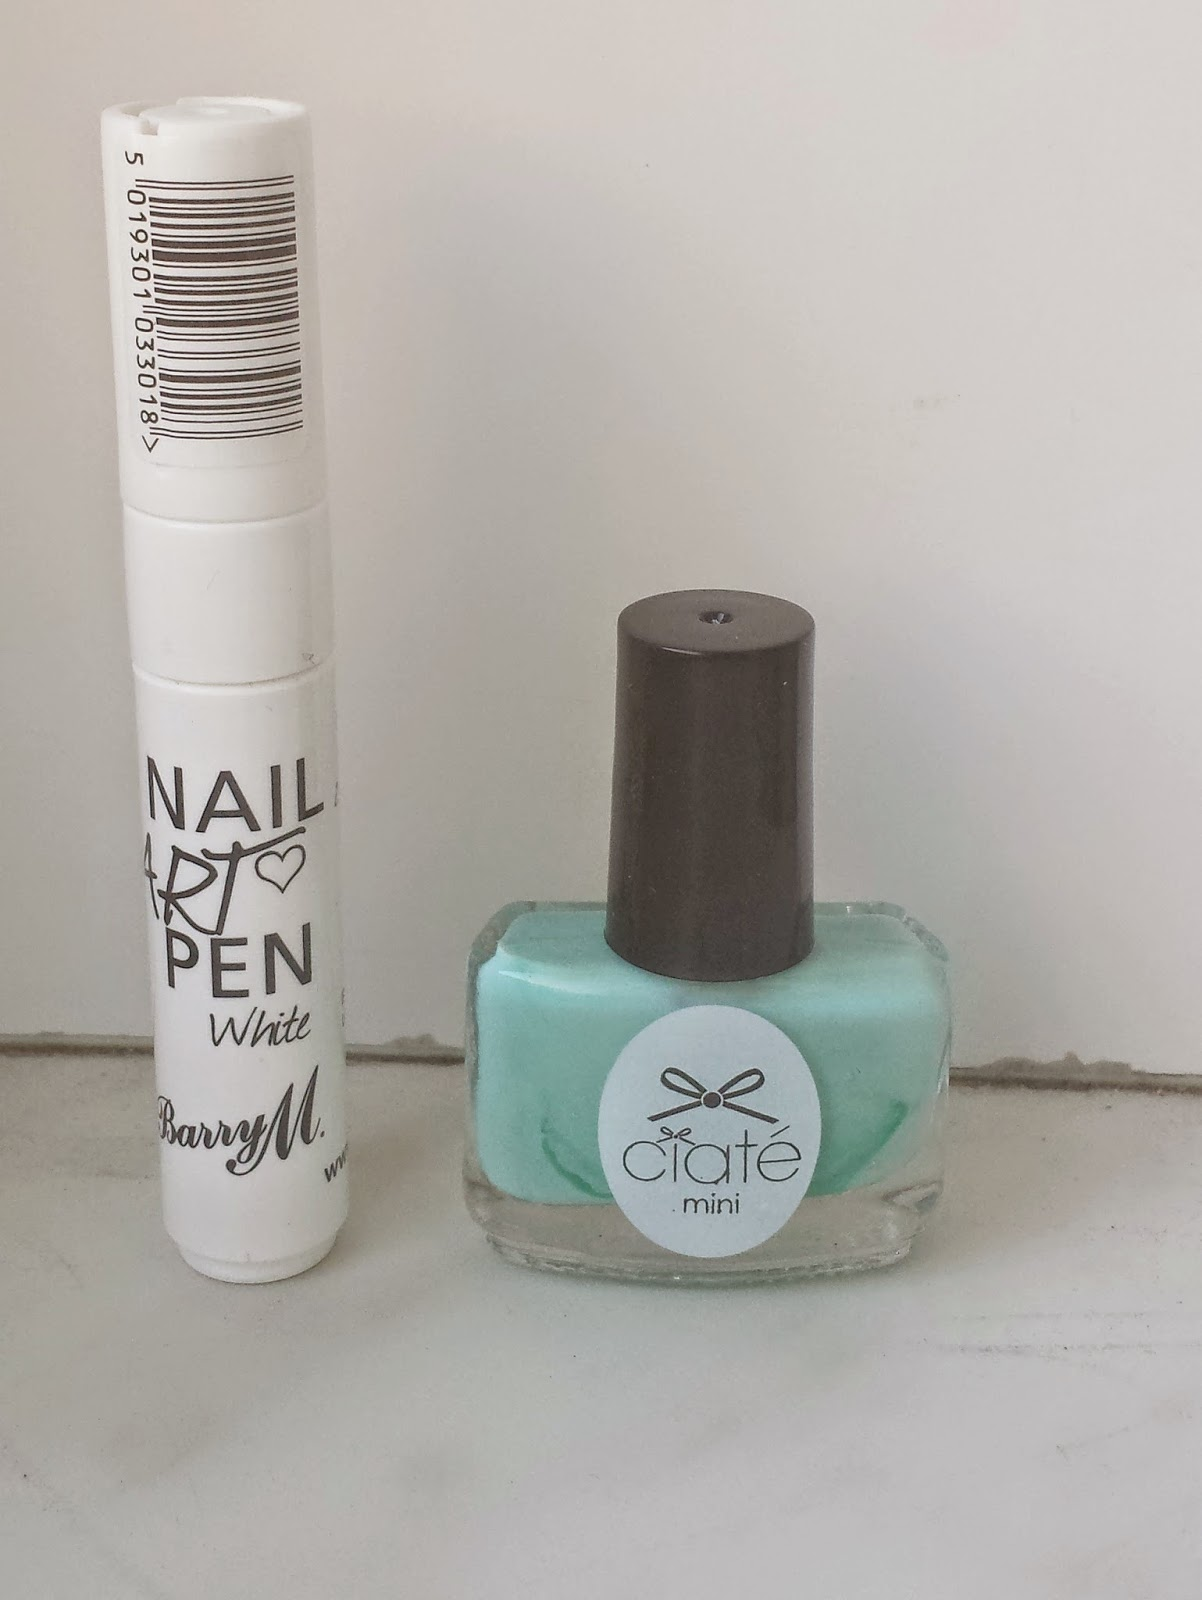 Clothes & Dreams: NOTD: Beach House and Lace: White Barry M Nail Art Pen and Ciaté mini polish Beach House collection Pepperminty